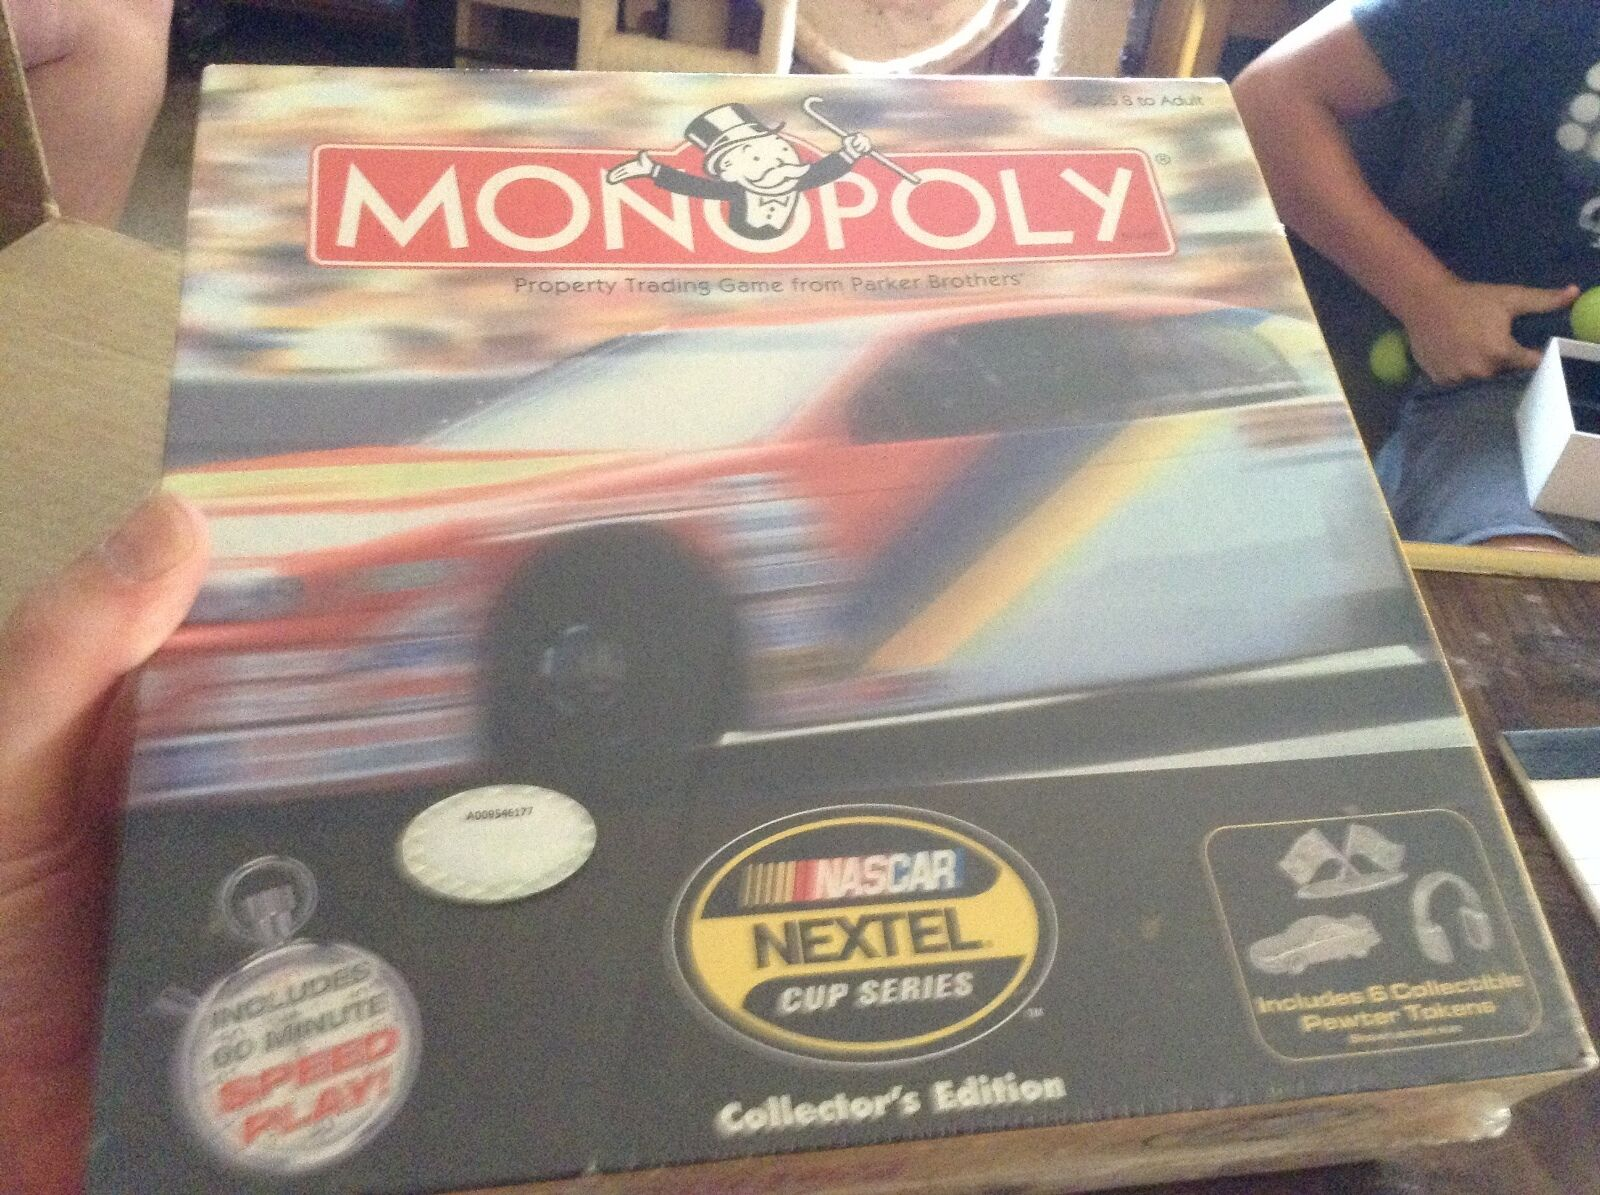 NASCAR Nextel cup collectors series monopoly game